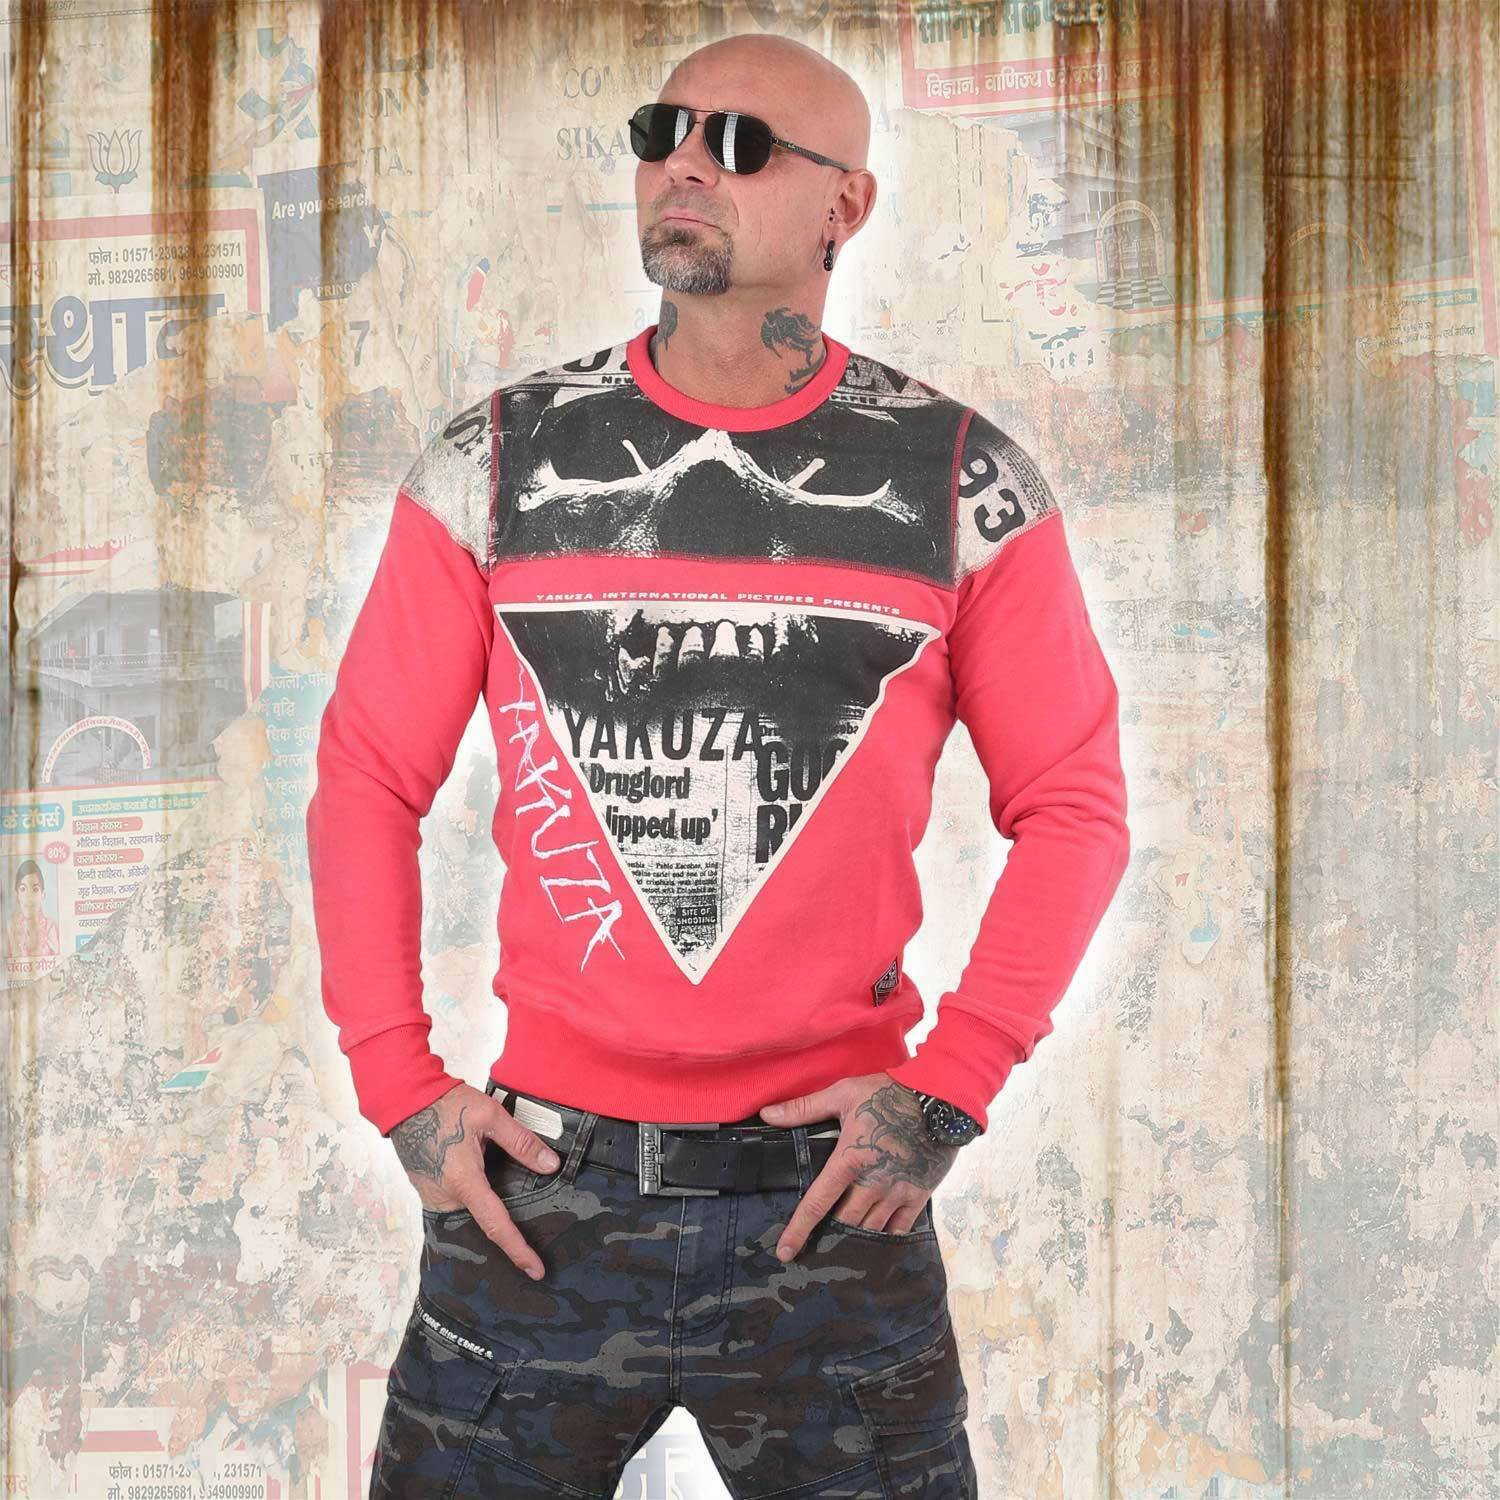 NUOVO Yakuza uomo Death by 893 Pullover Sweater-Geranium Sweater-Geranium Sweater-Geranium c366a5